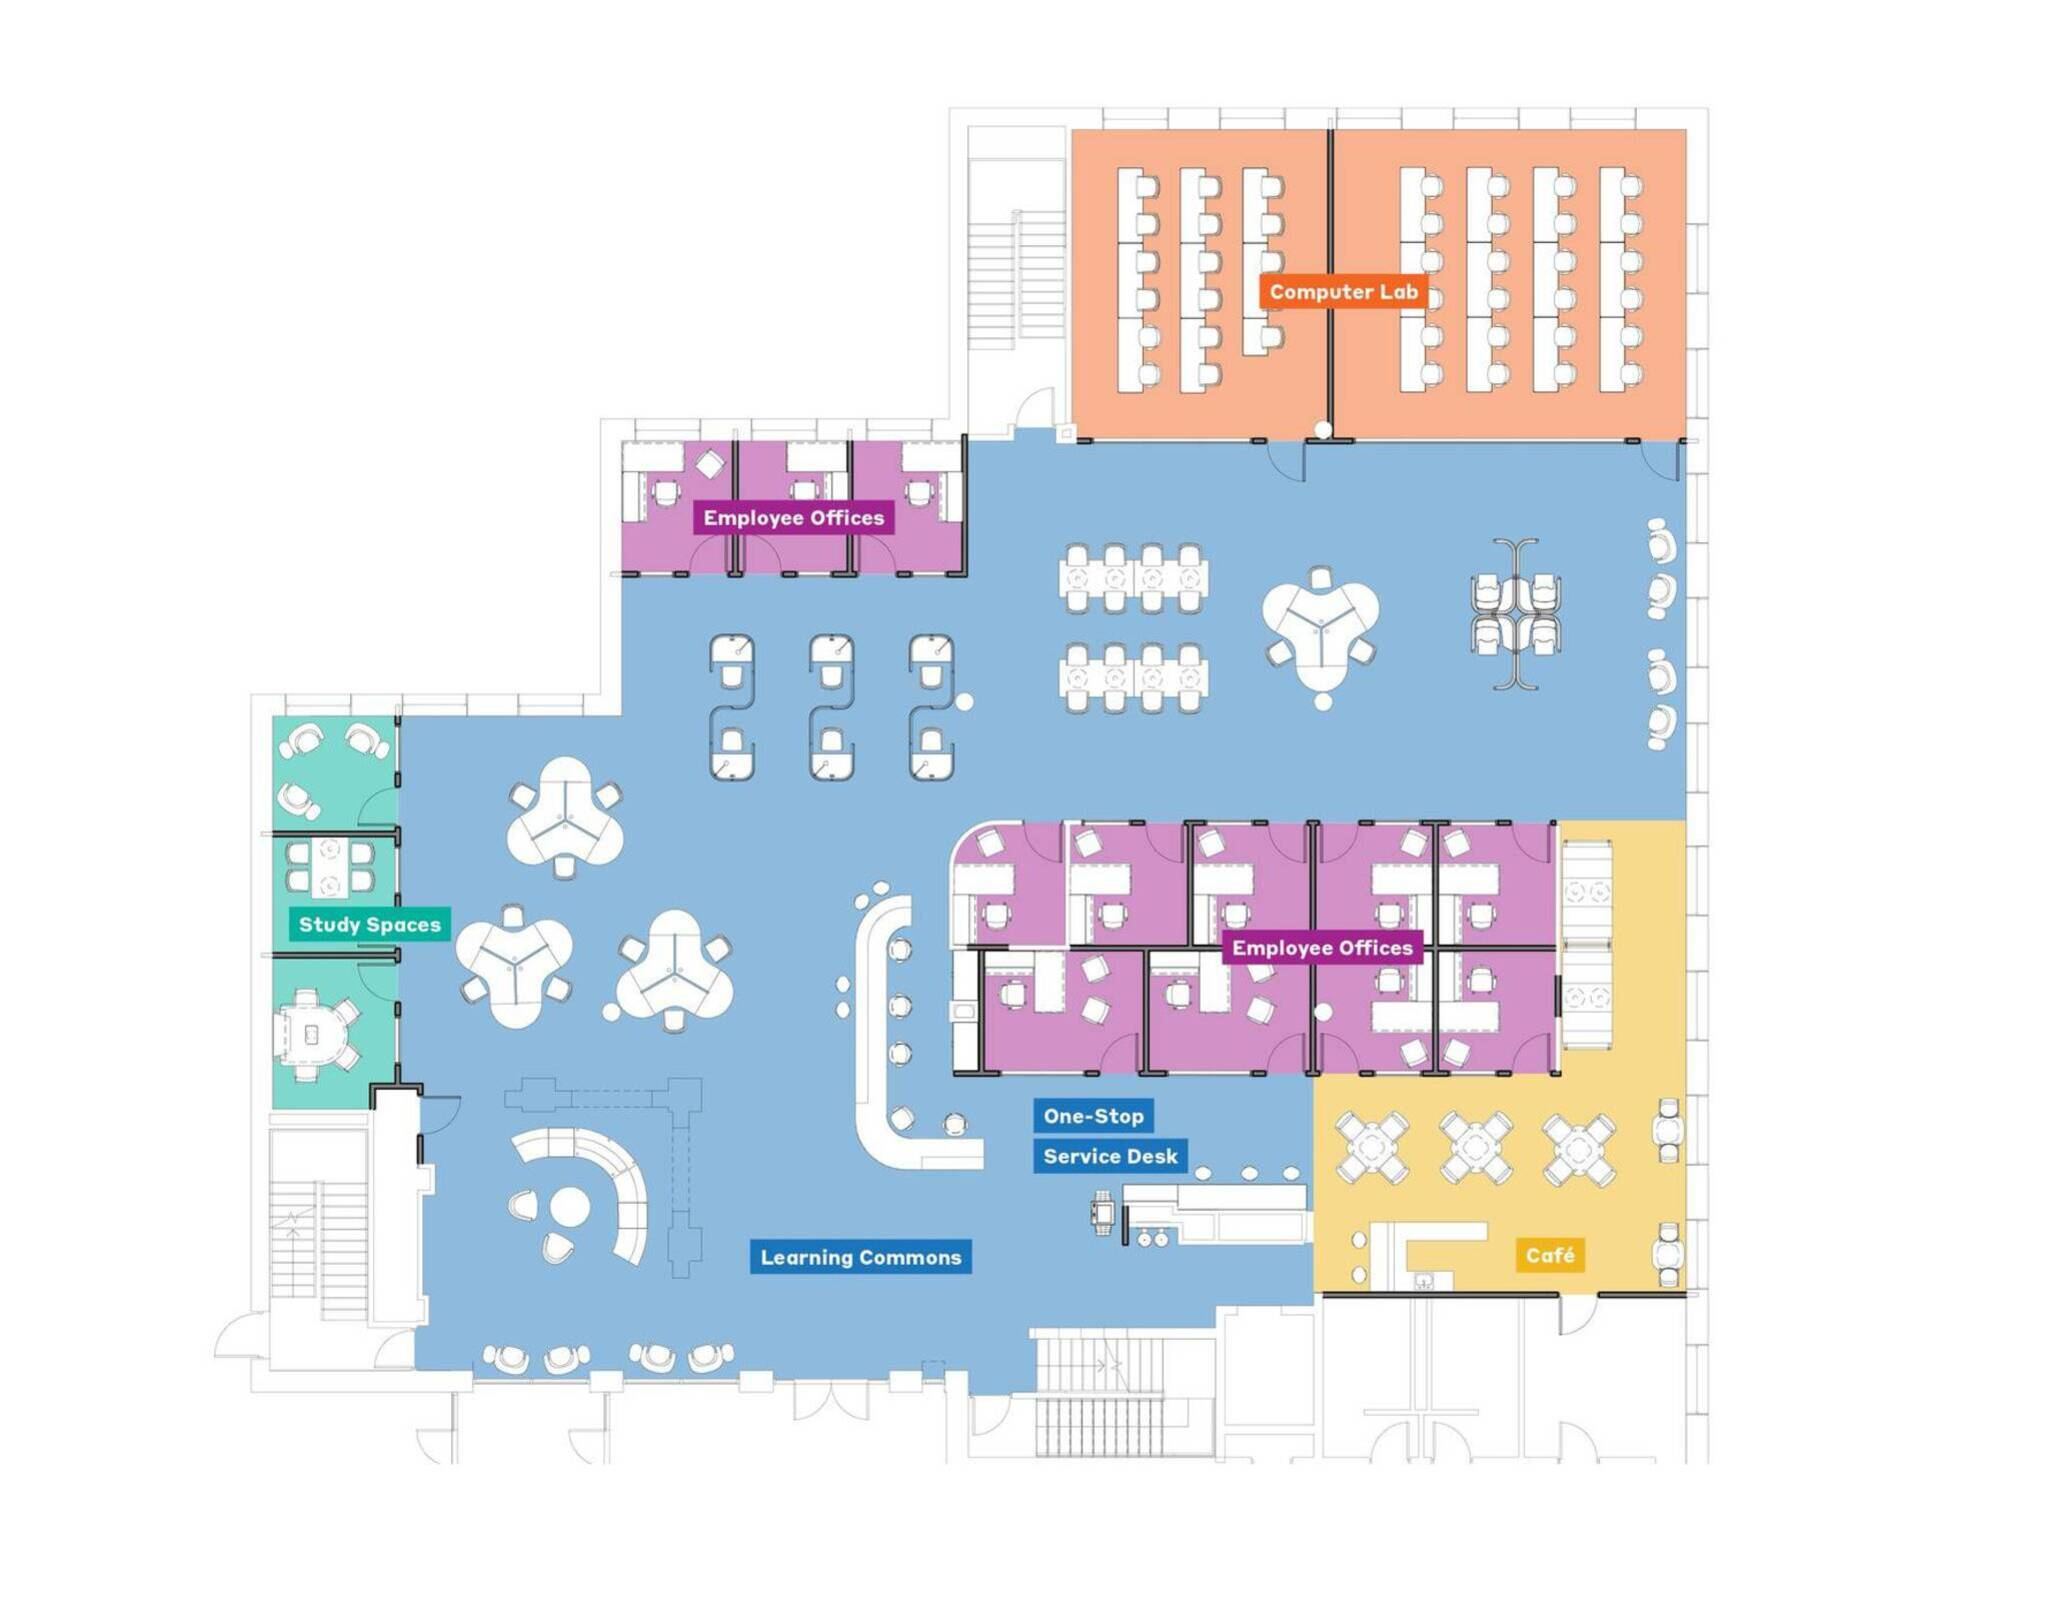 Library Commons Blueprint